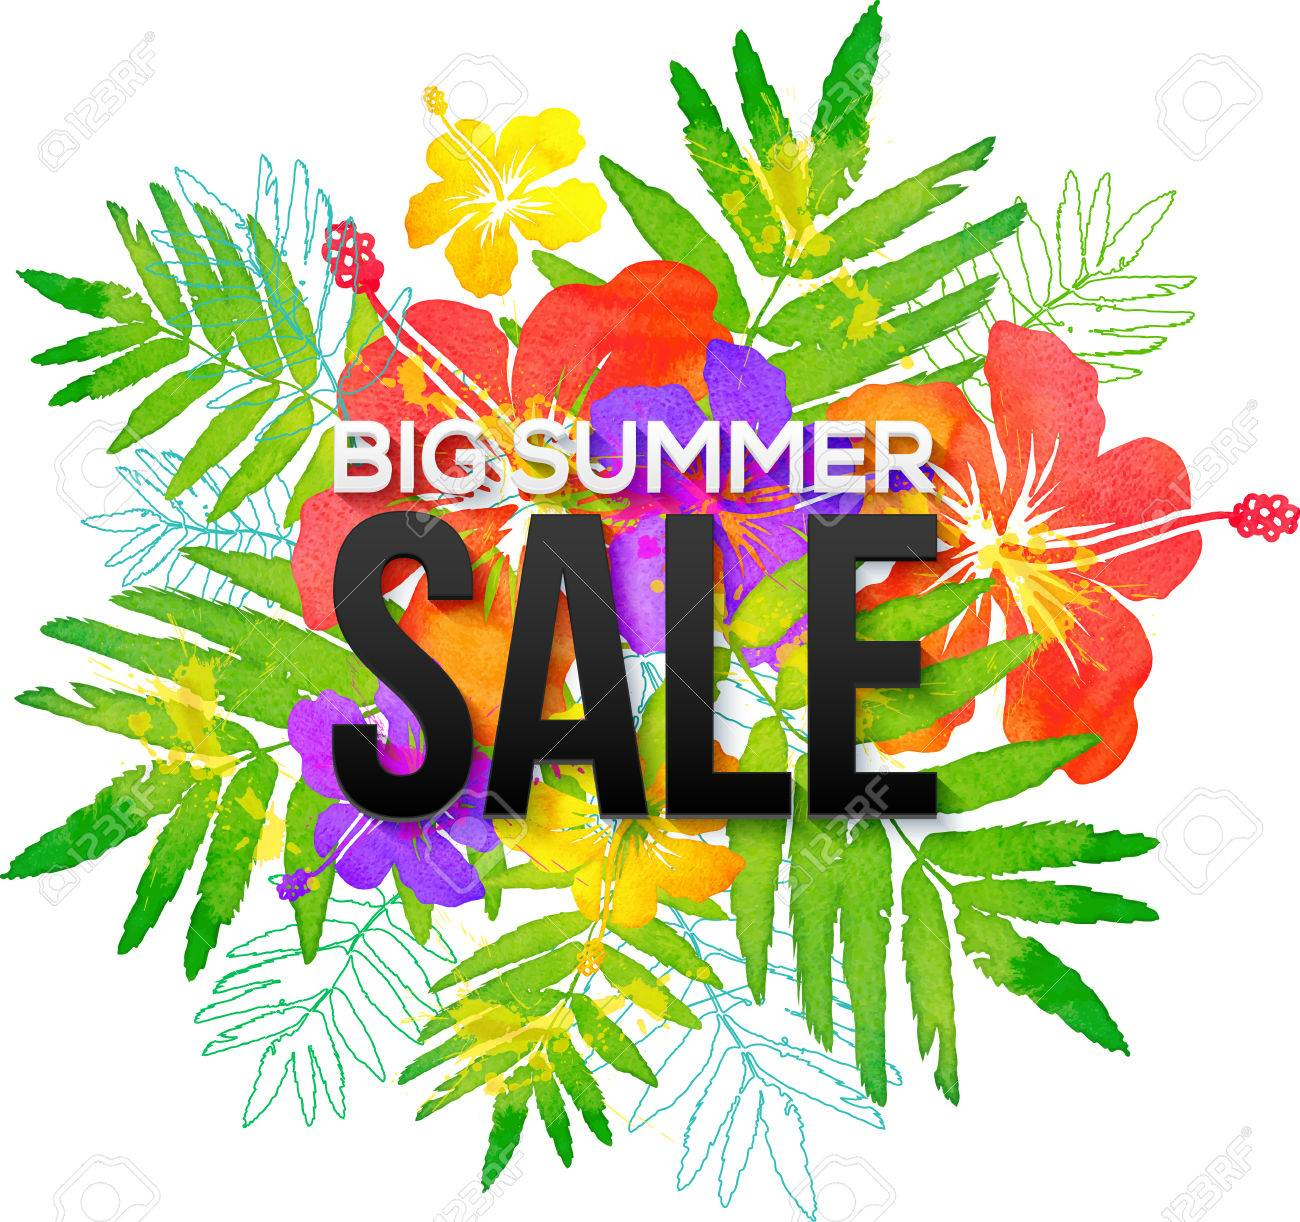 40974888-watercolor-tropical-flowers-bouquet-with-black-big-summer-sale-sign.jpg